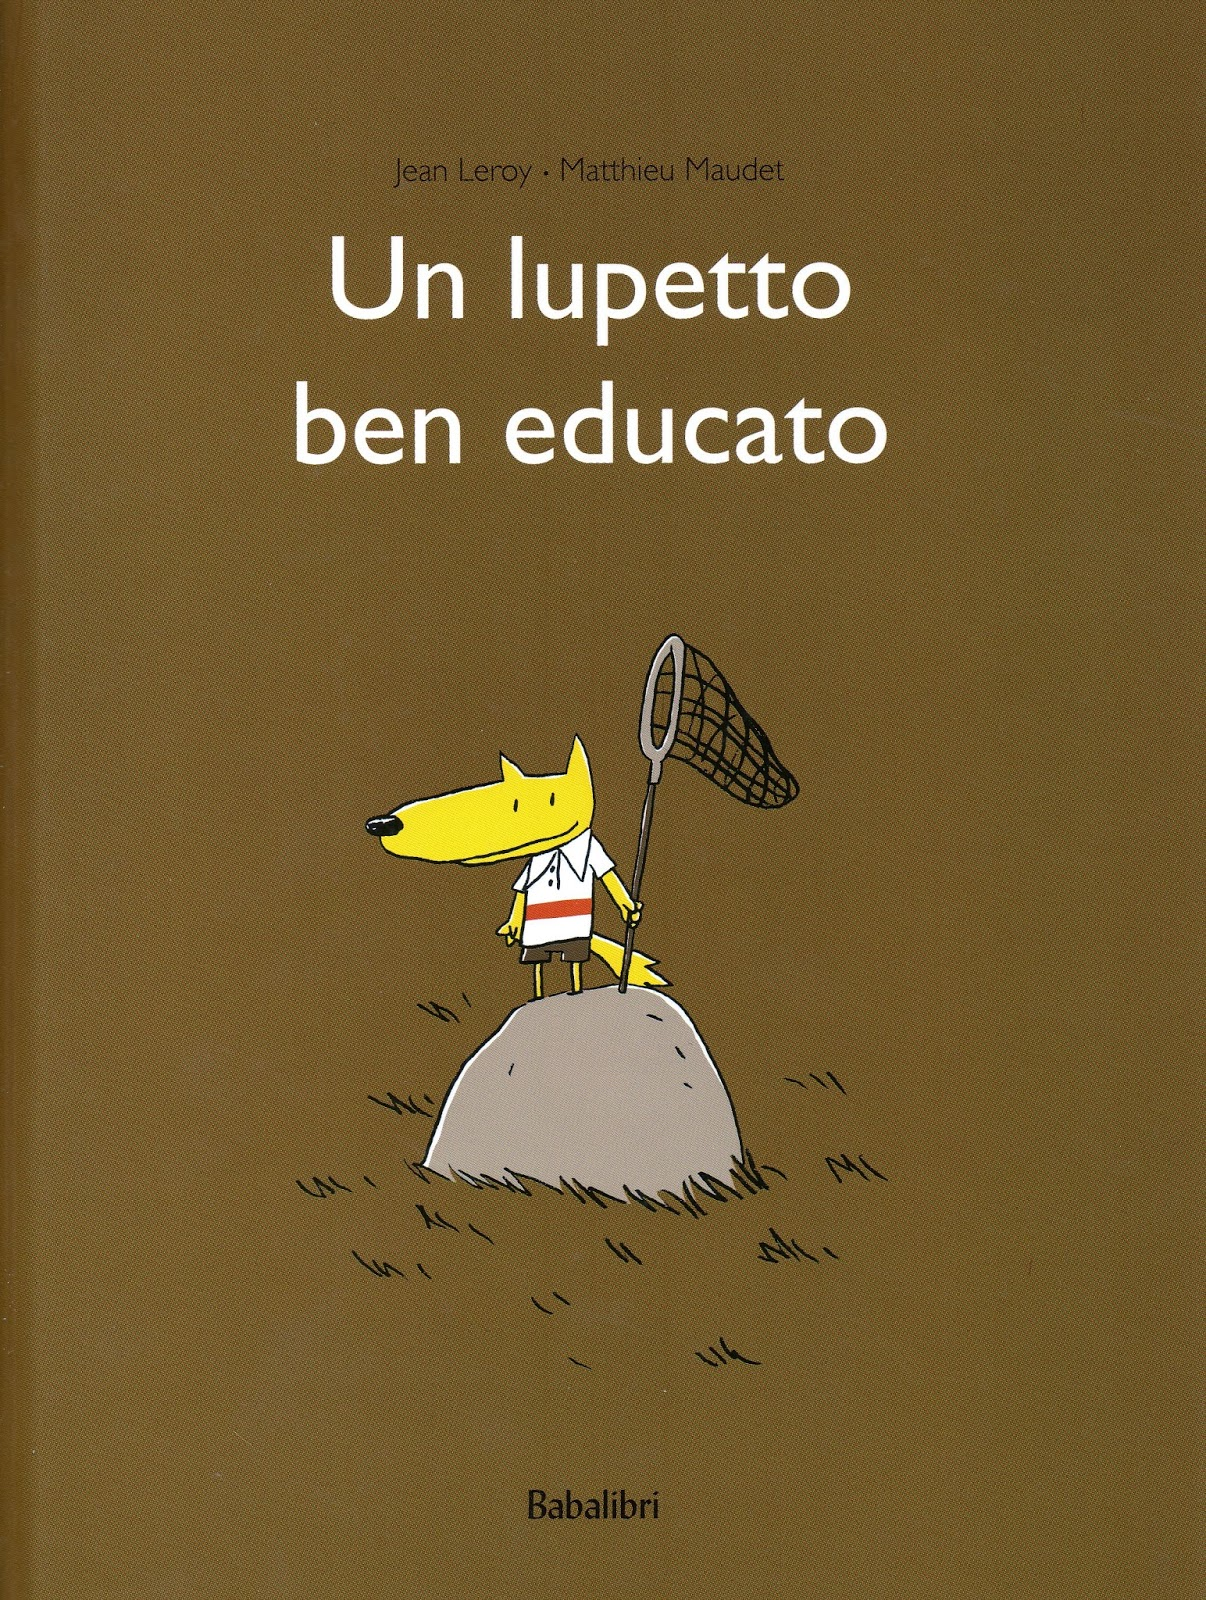 Un lupetto ben educato Book Cover